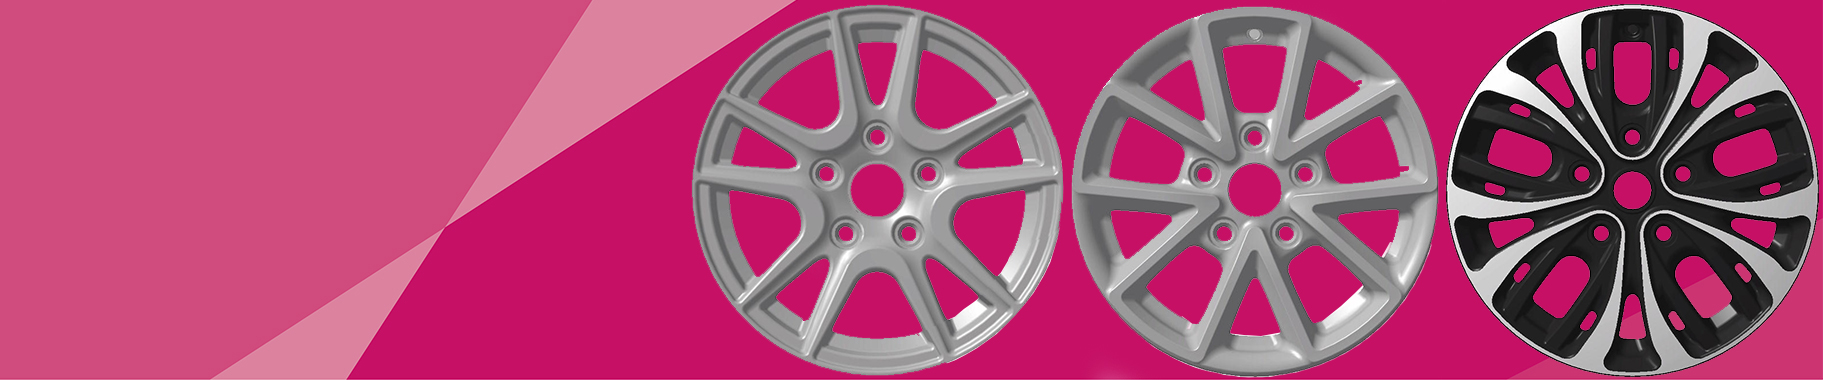 ALVANCE Aluminium Wheels breaks into caravan market with Tyre-Line deal